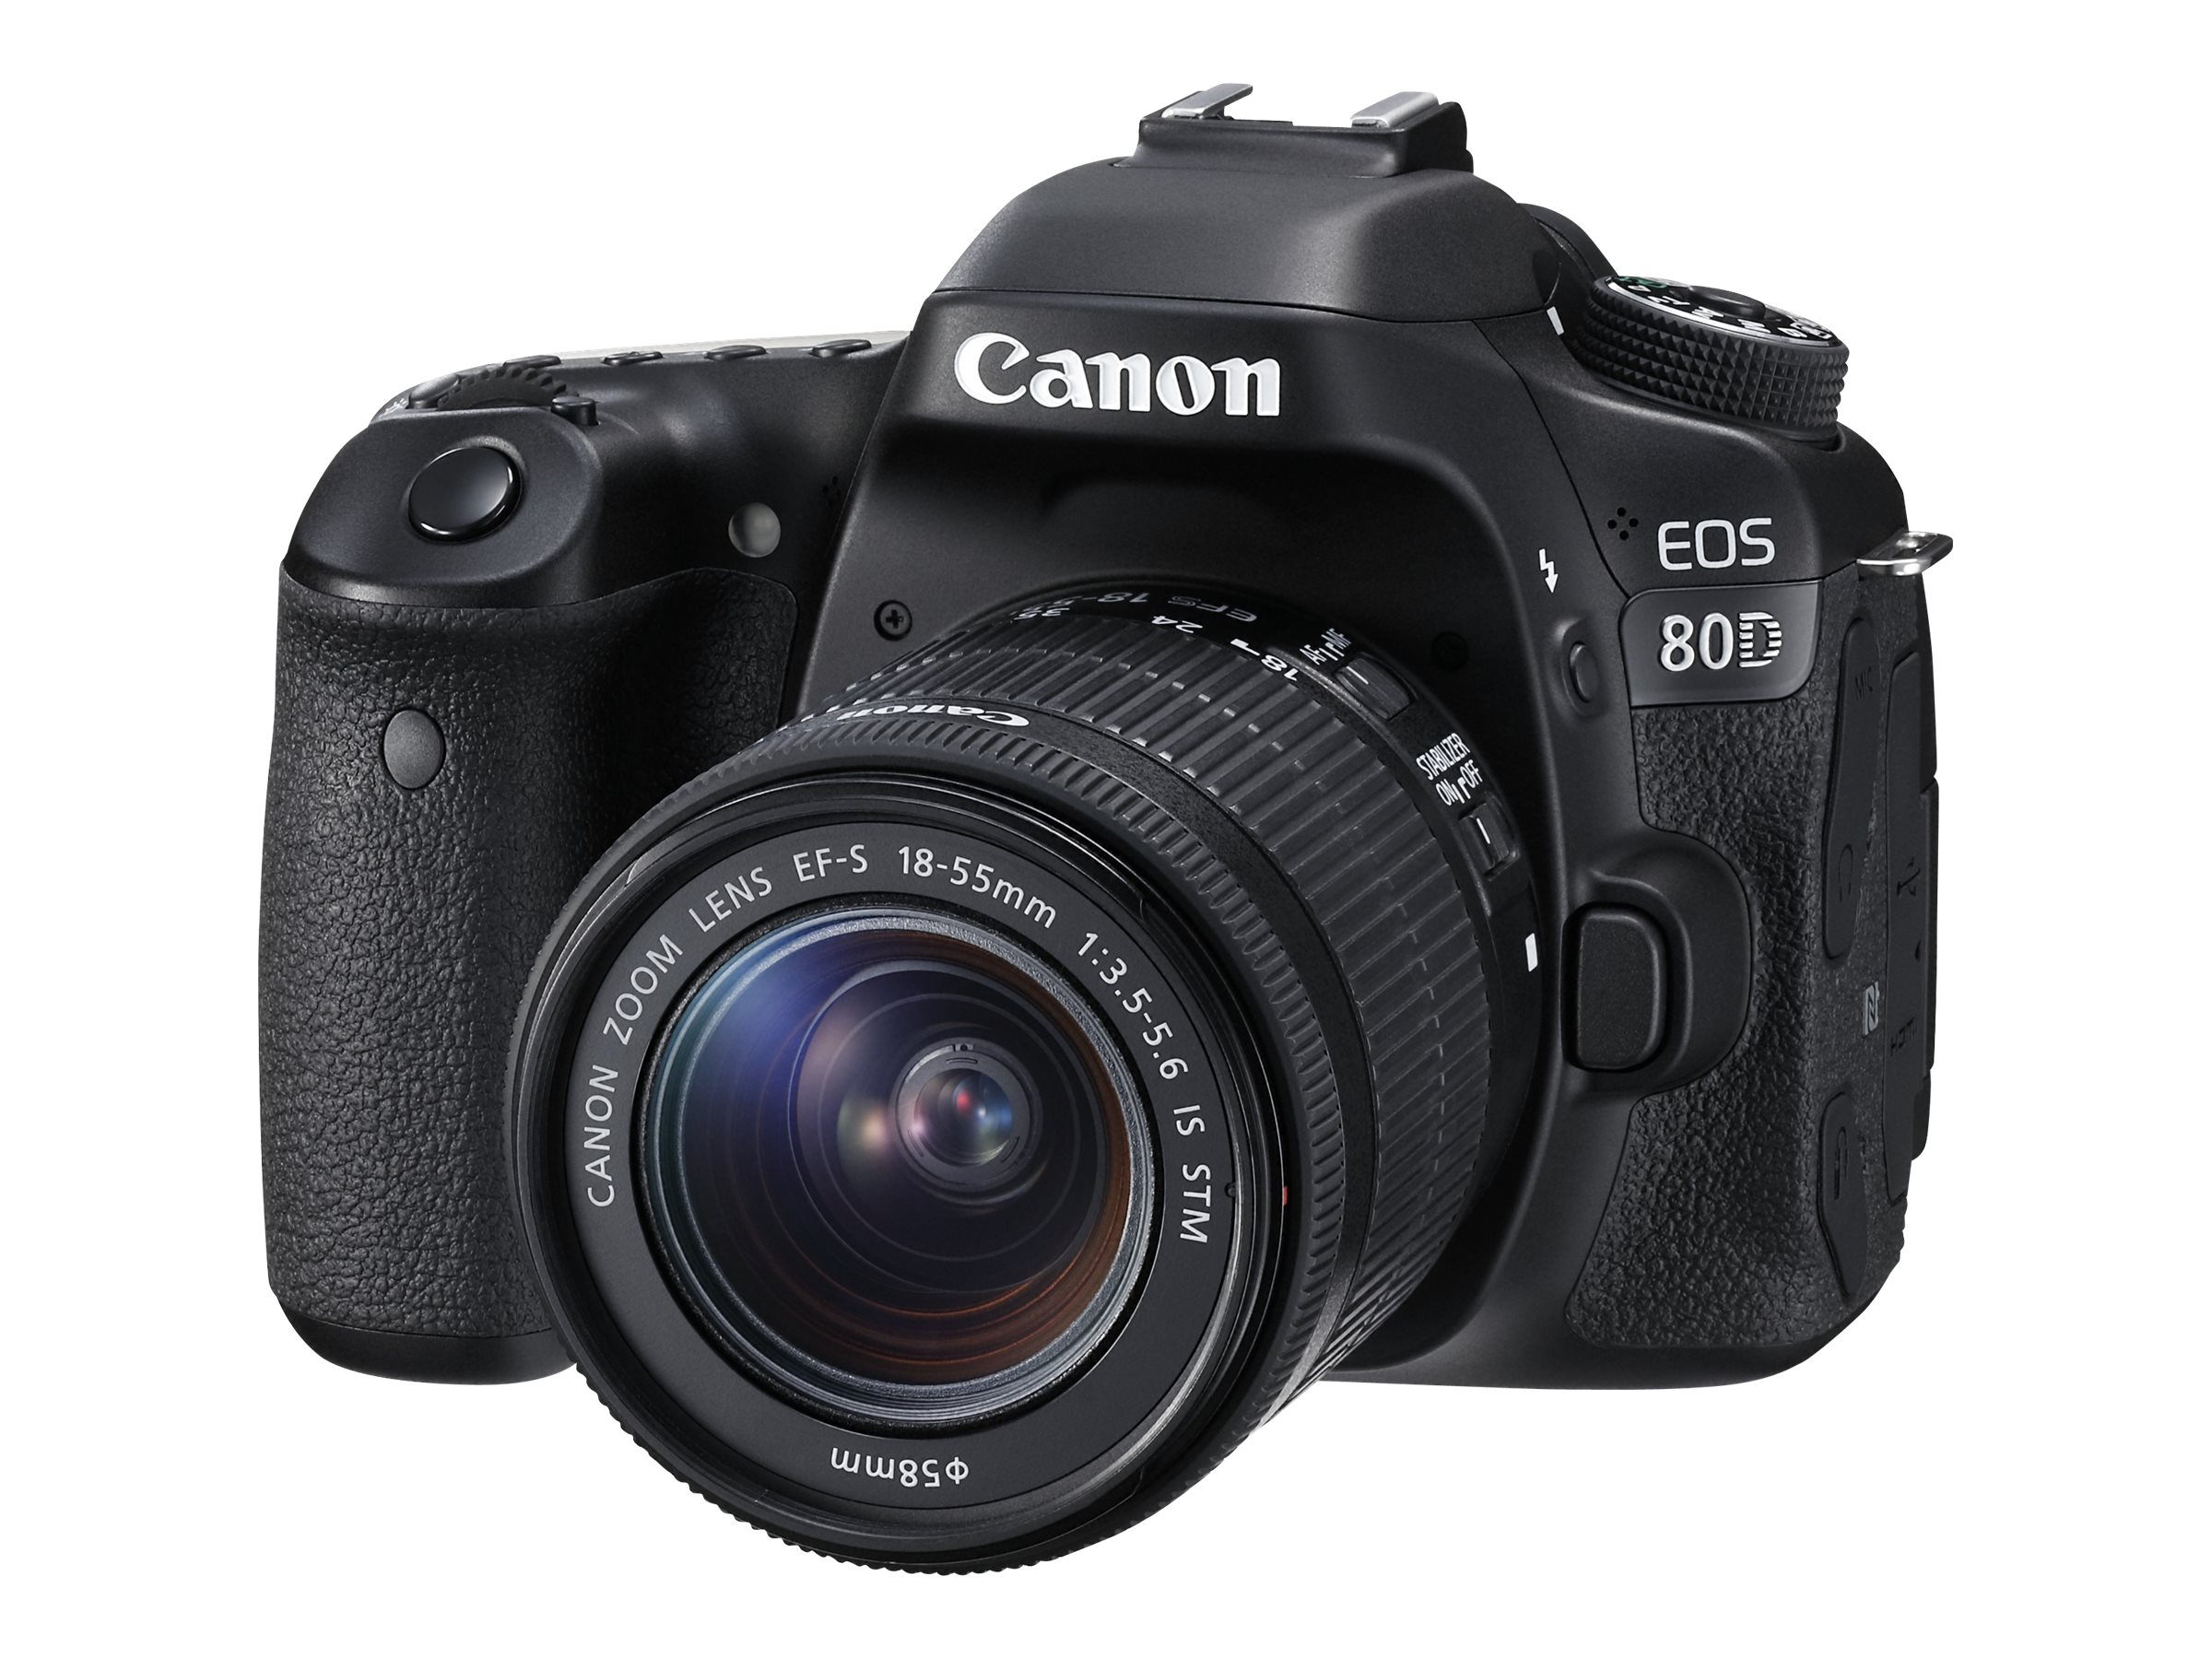 Image for Canon EOS 80D - Digital camera - SLR - 24.2 MP - APS-C - 1080p / 60 fps - 3x optical zoom EF-S 18-55mm IS STM lens - Wi-Fi, NFC from Circuit City